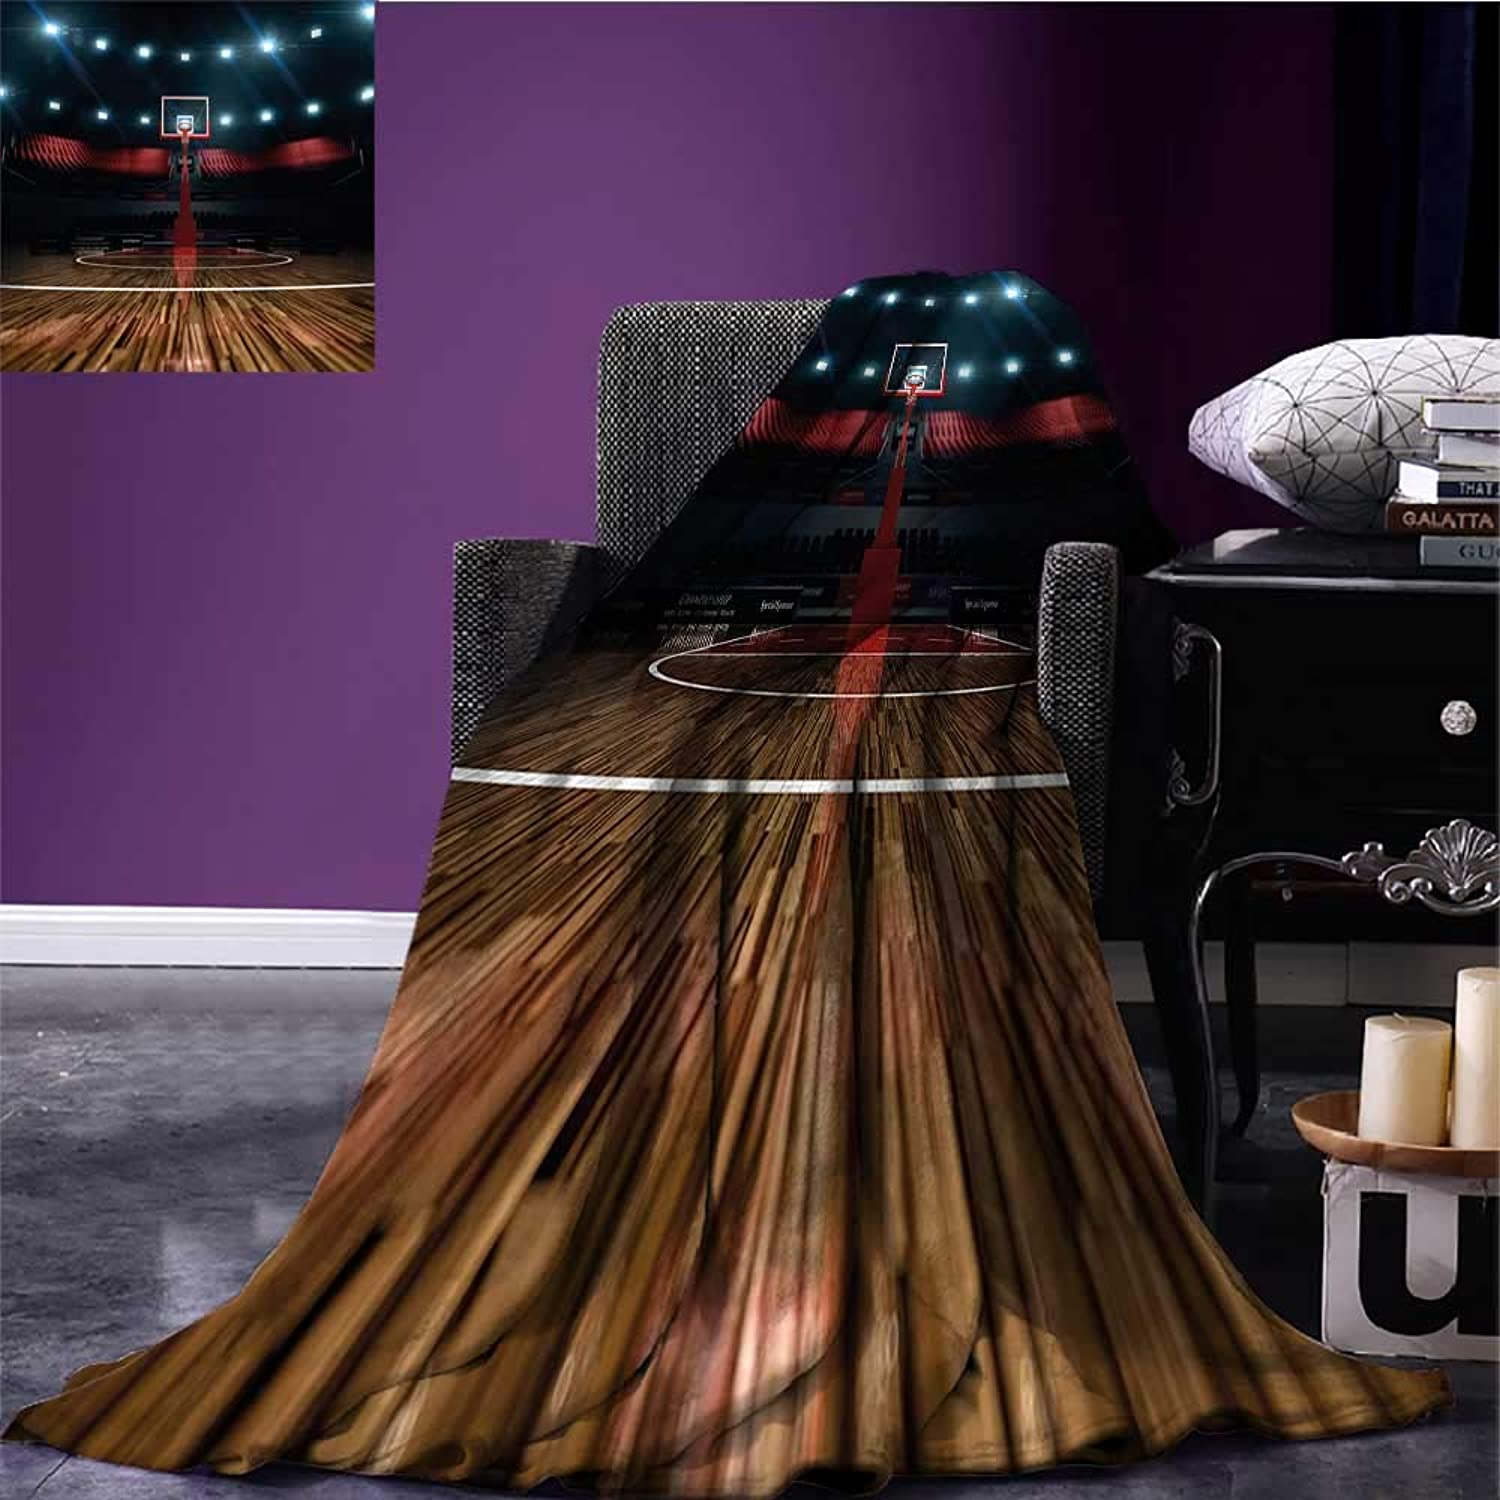 Teen Room Decor Throw Blanket Professional Basketball Arena Stadium Before Game Championship Sports Image Plush Throw Blanket Multicolor Bed or Couch 60 x50